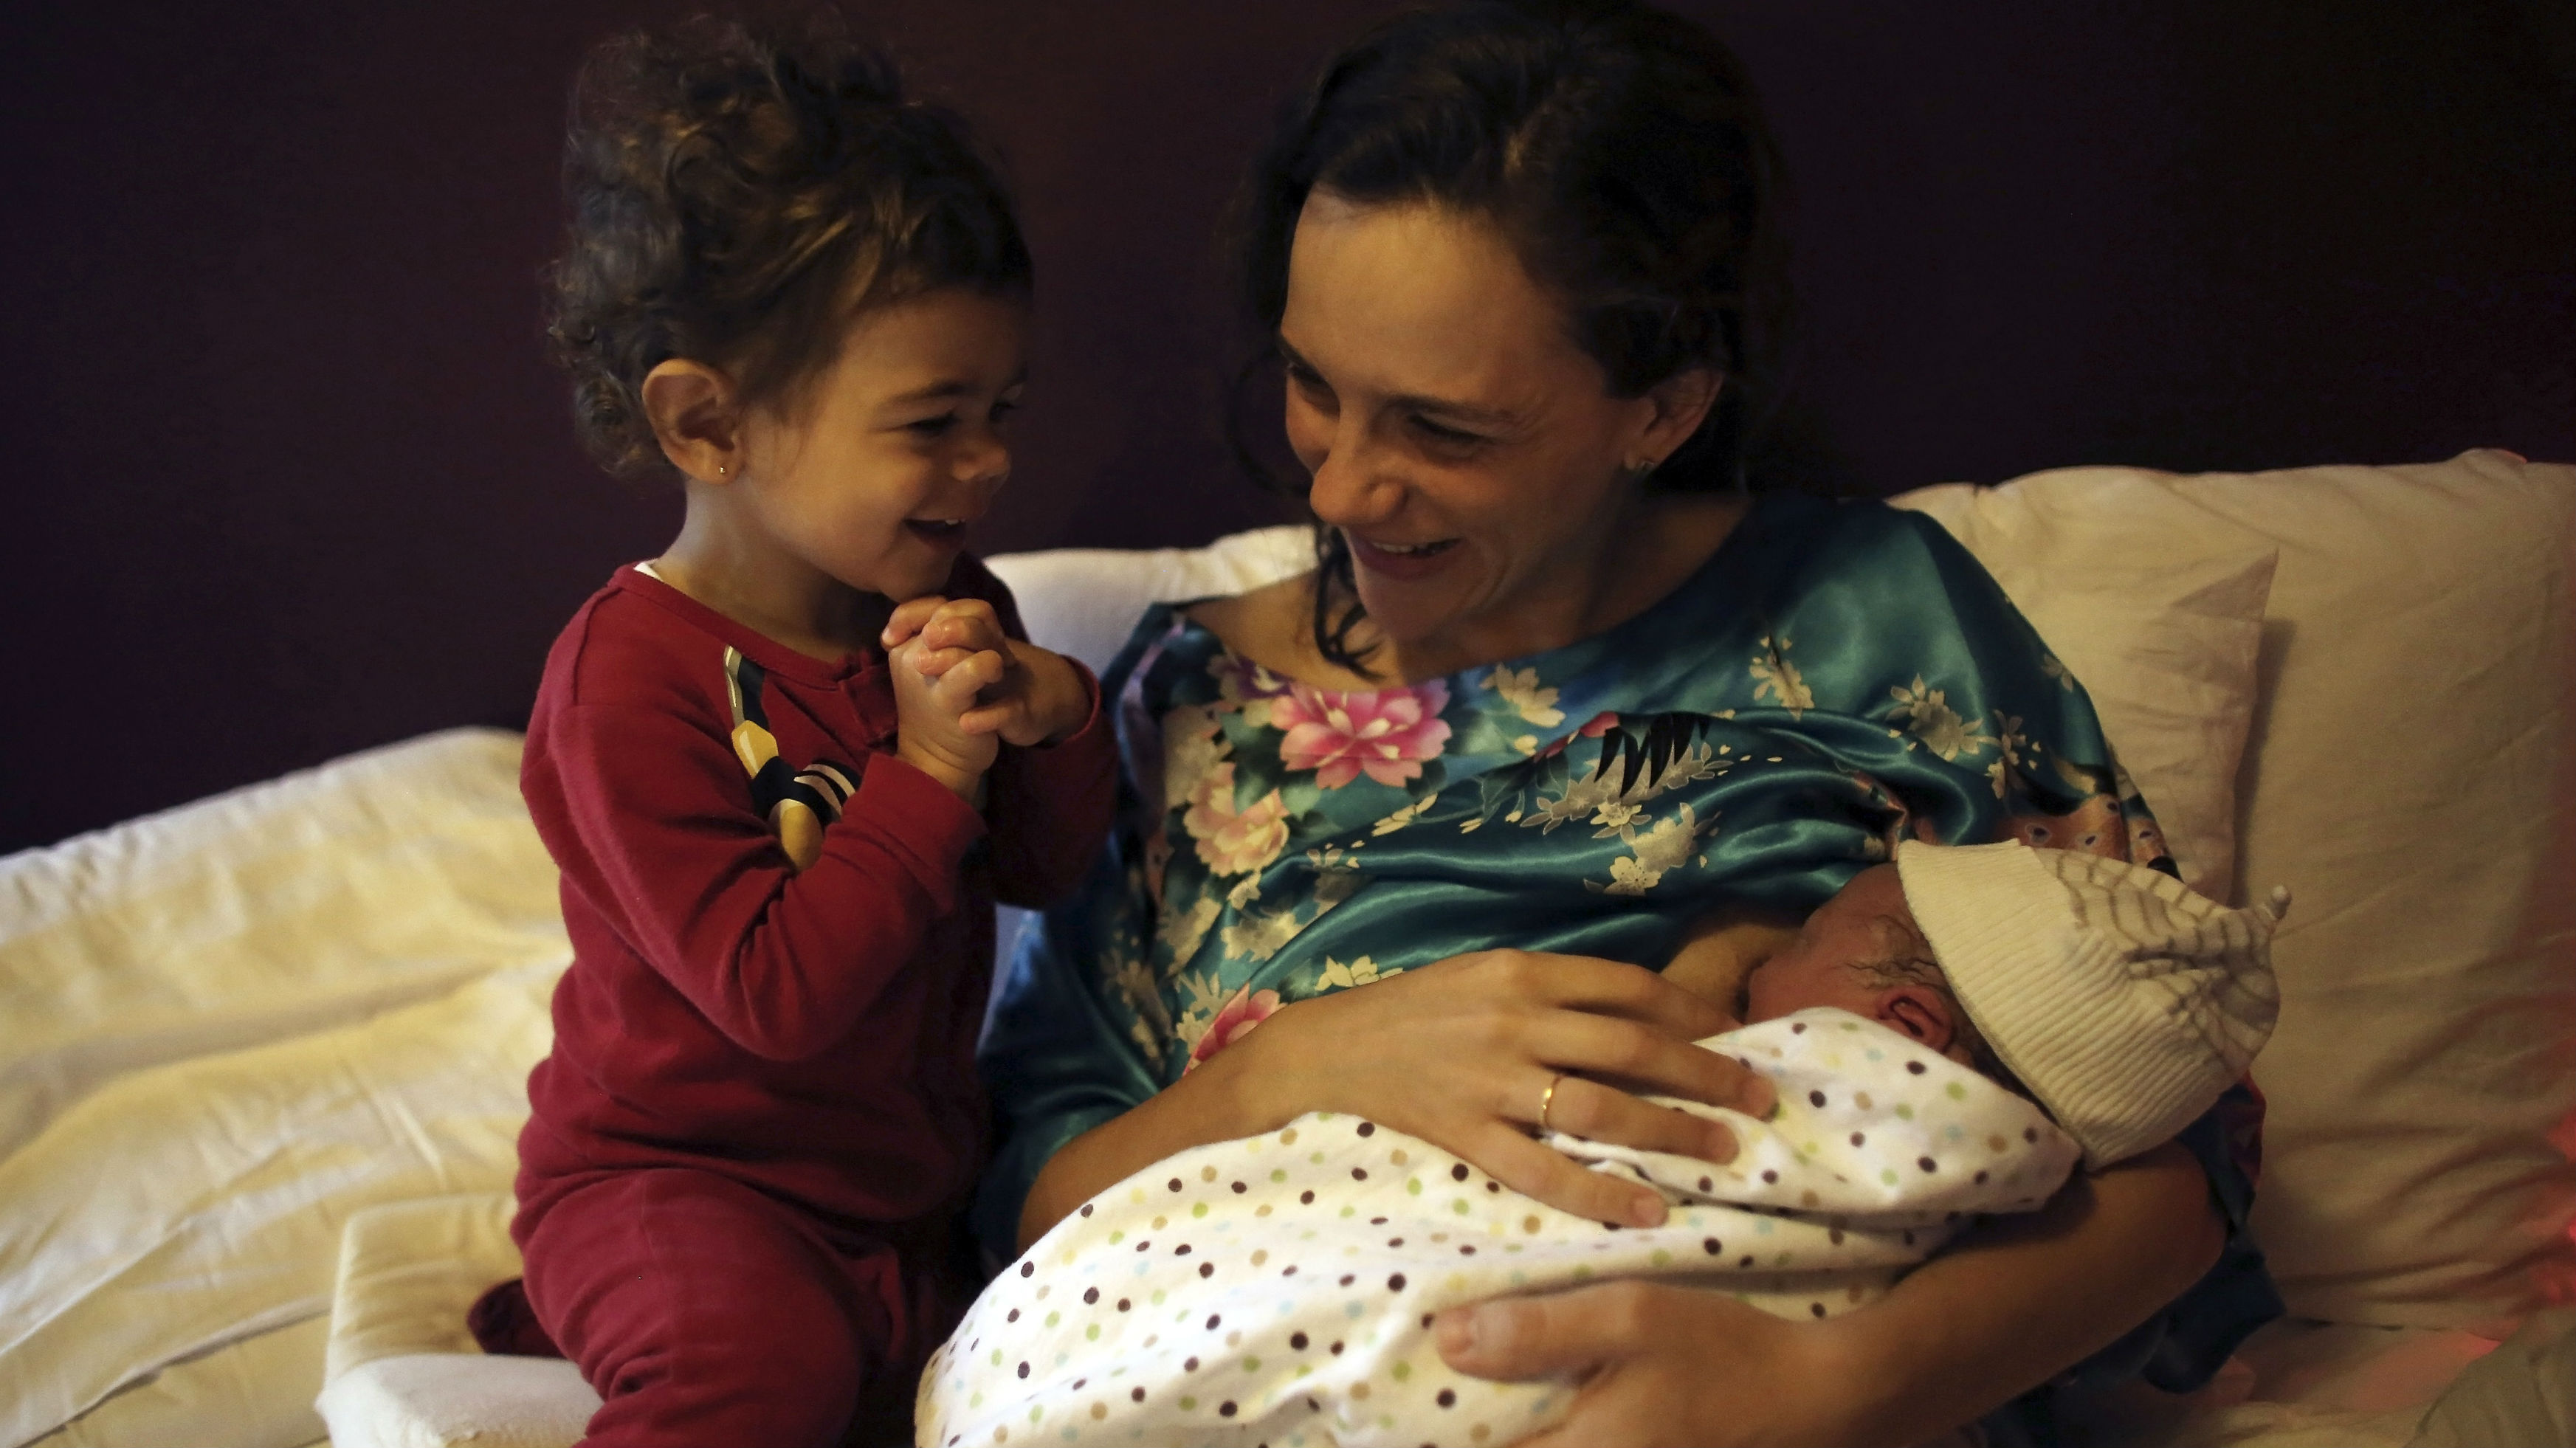 Manuela Mitre nurses her newborn son Gael as her daughter Alice watches at their home in Sao Paulo November 6, 2013. Manuela and her husband Andre decided to have their child born in a pool of warm water, which creates an environment similar to that inside the womb, according to the midwives. Picture taken November 6, 2013.